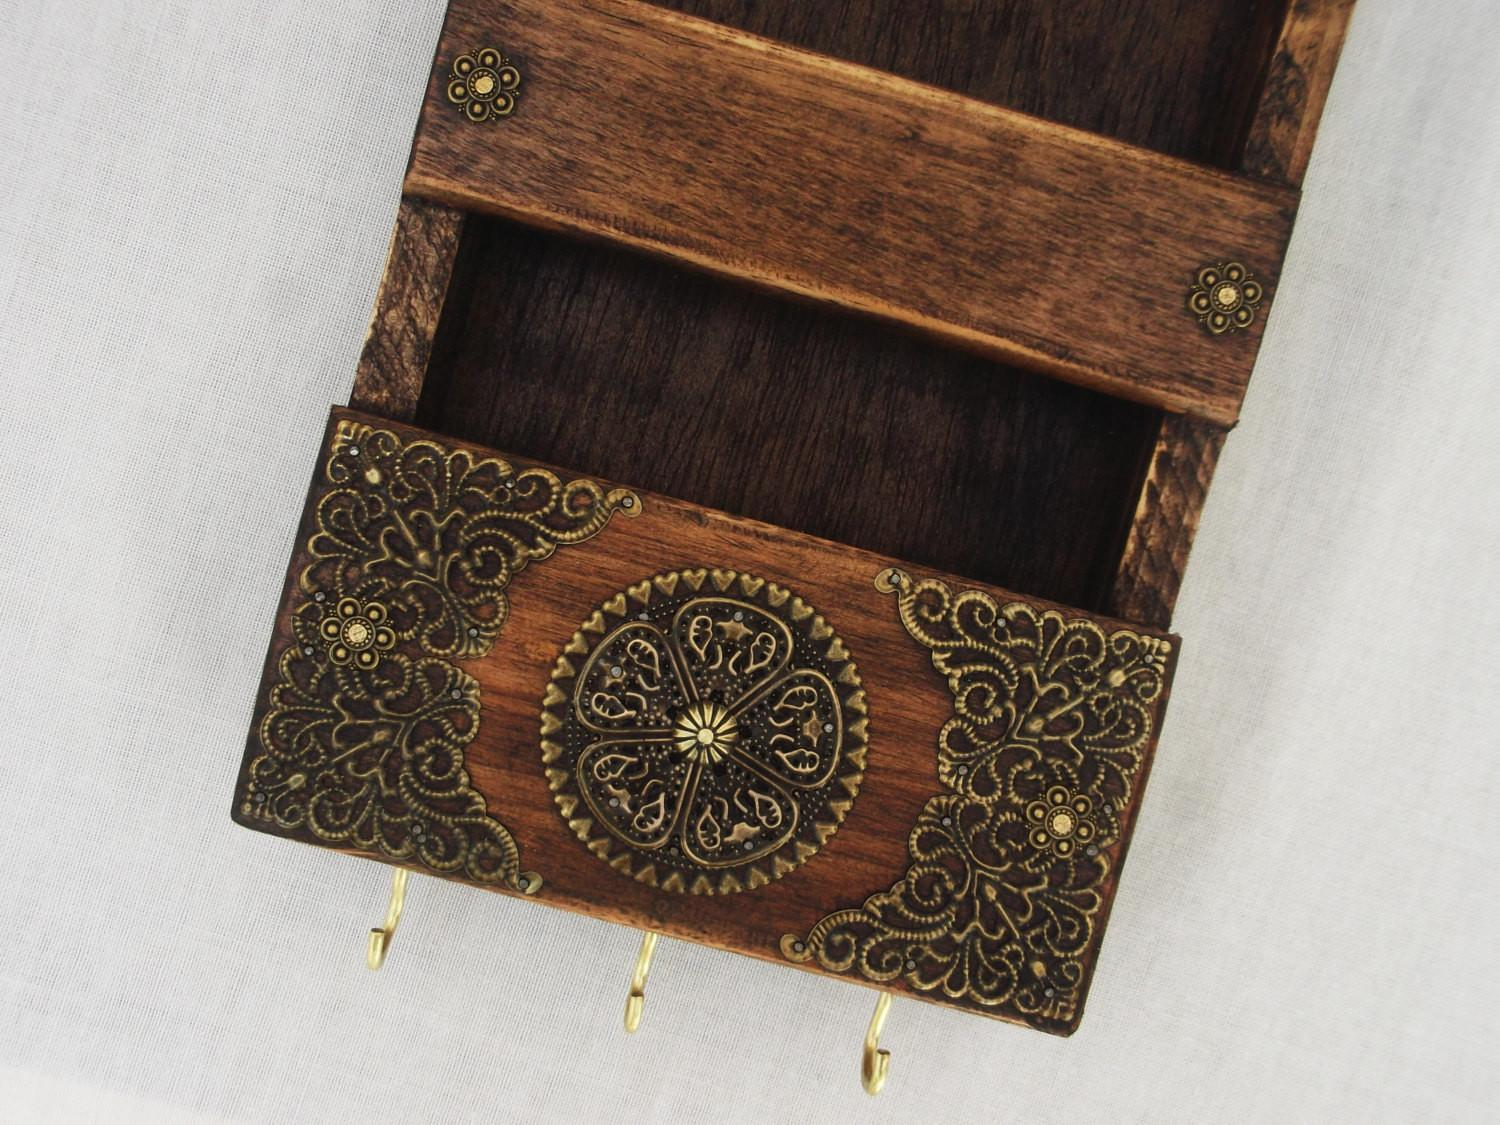 Decorative Rustic Mail Holder Key Rack Wooden Wall